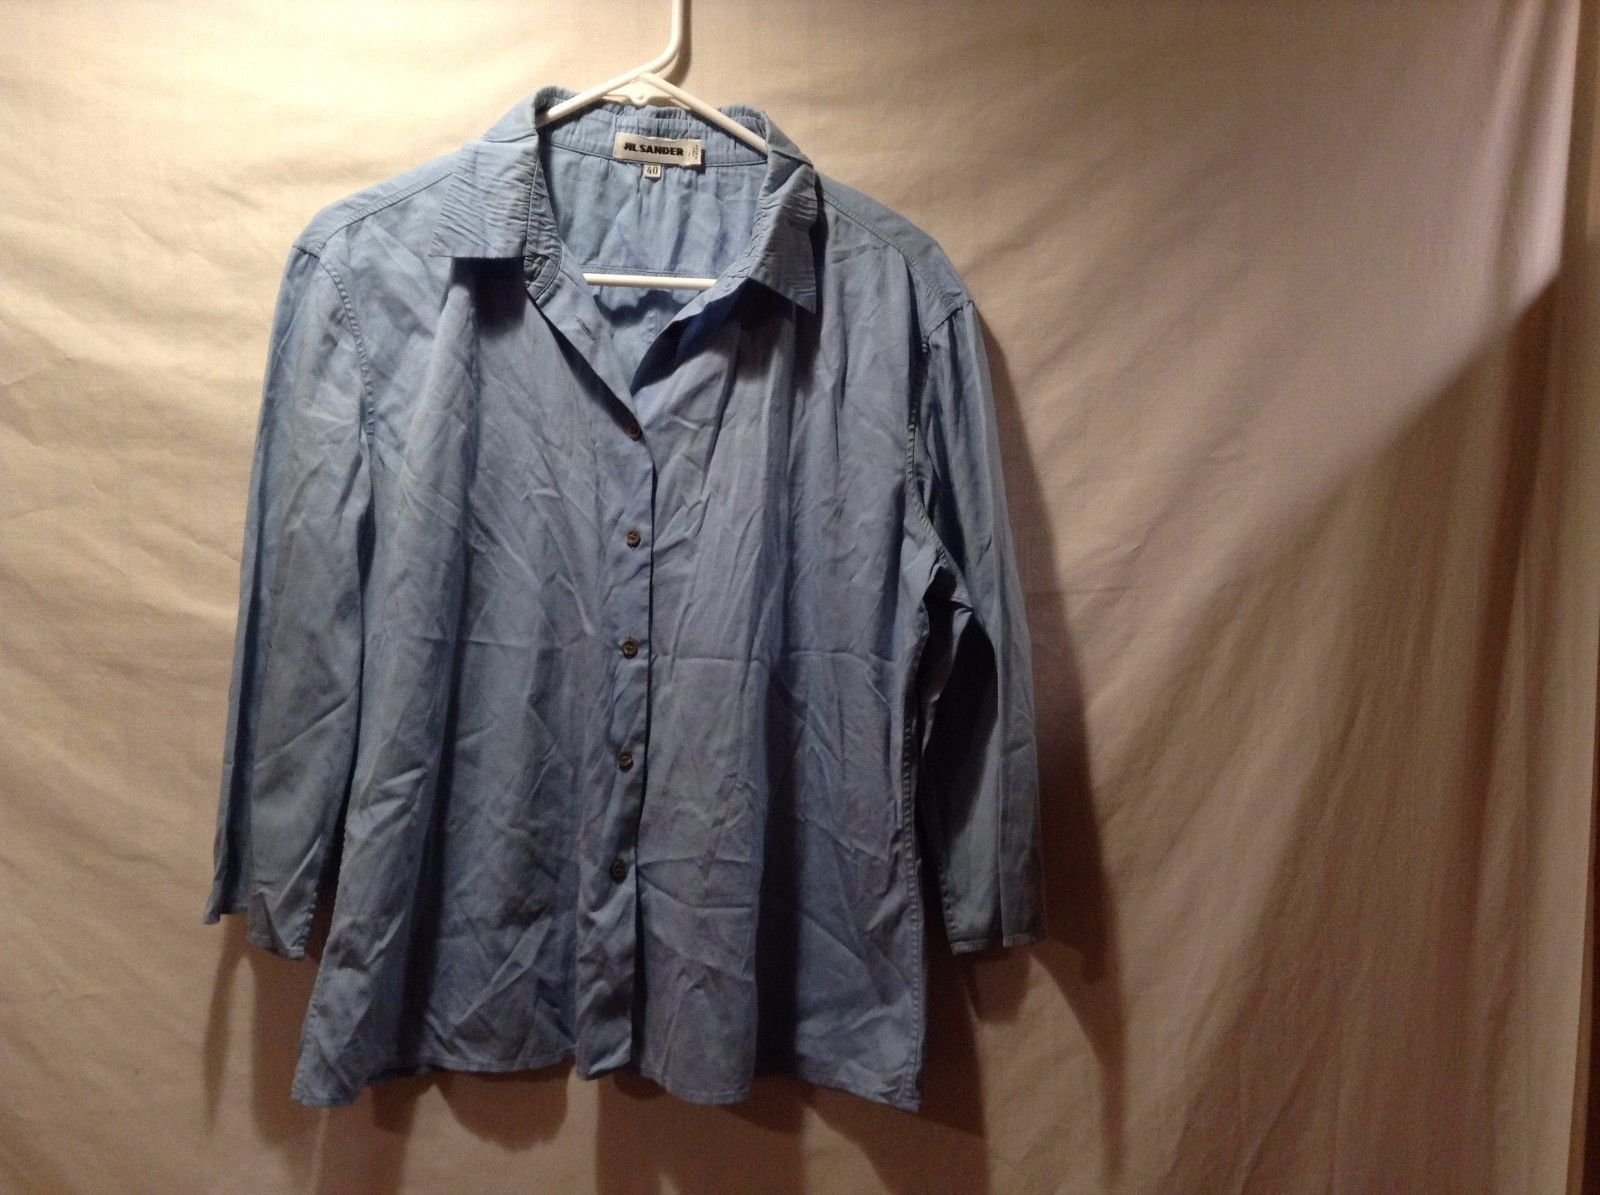 Ladies Italian 3/4 Sleeve Button Down Blue Shirt By Jil Sander Sz 40